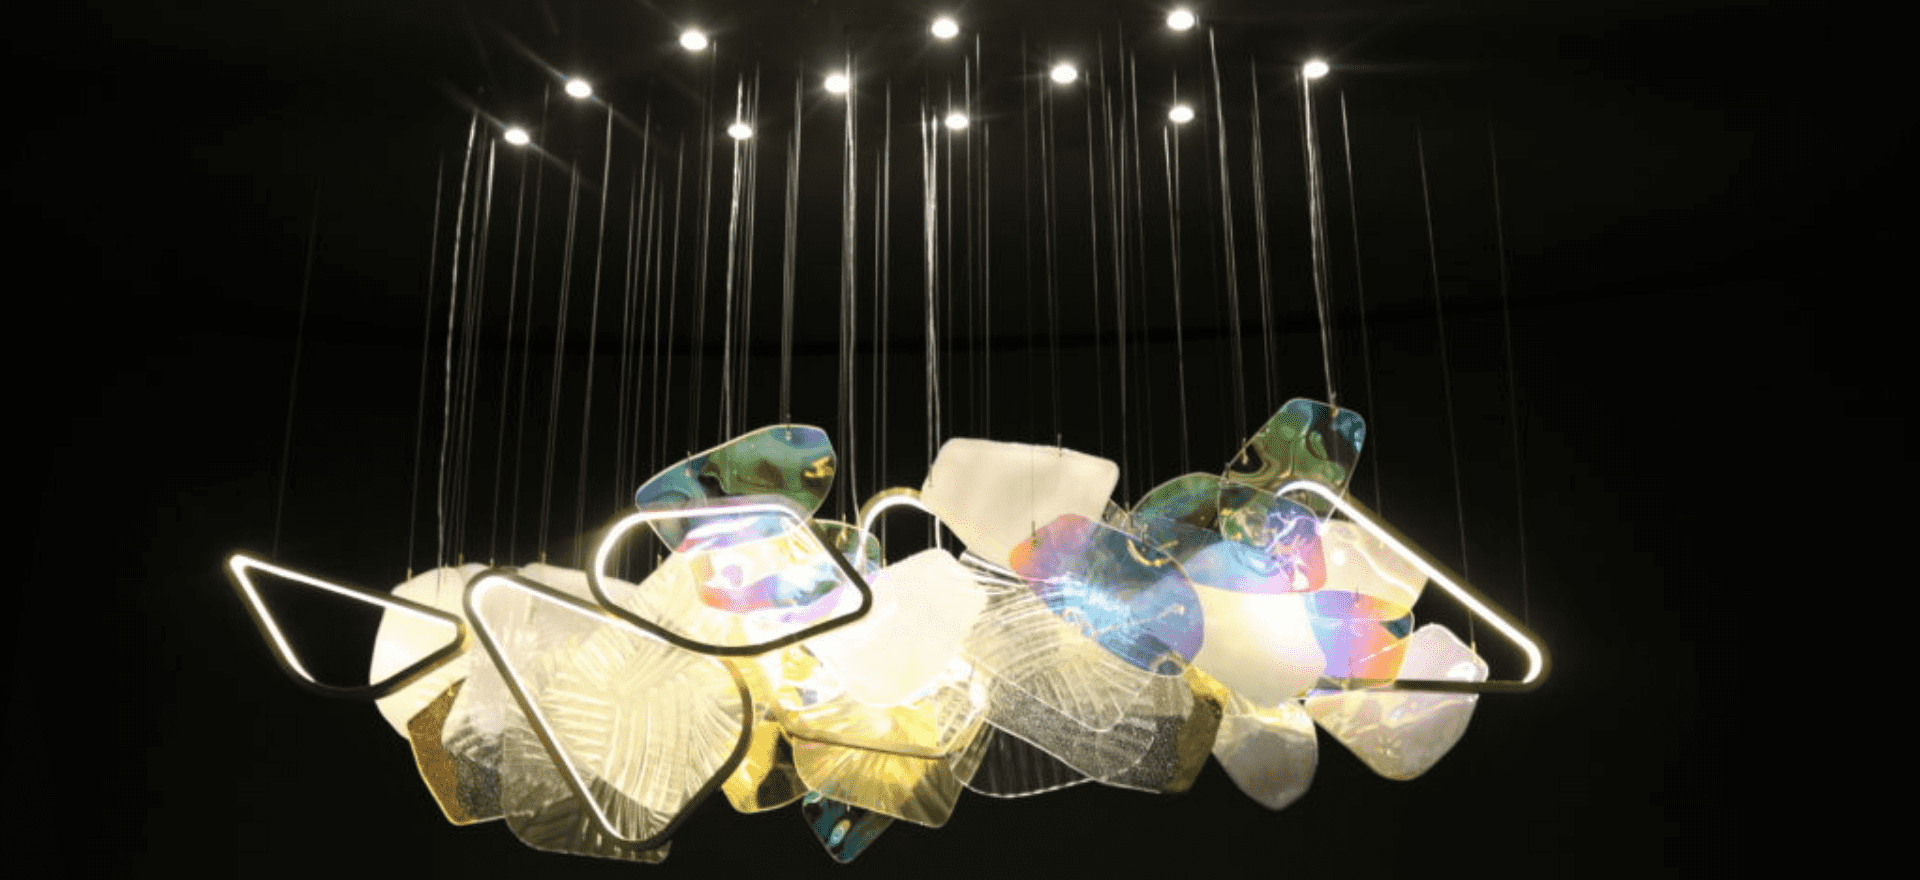 Lasvit luxory lighting interior design inspiration